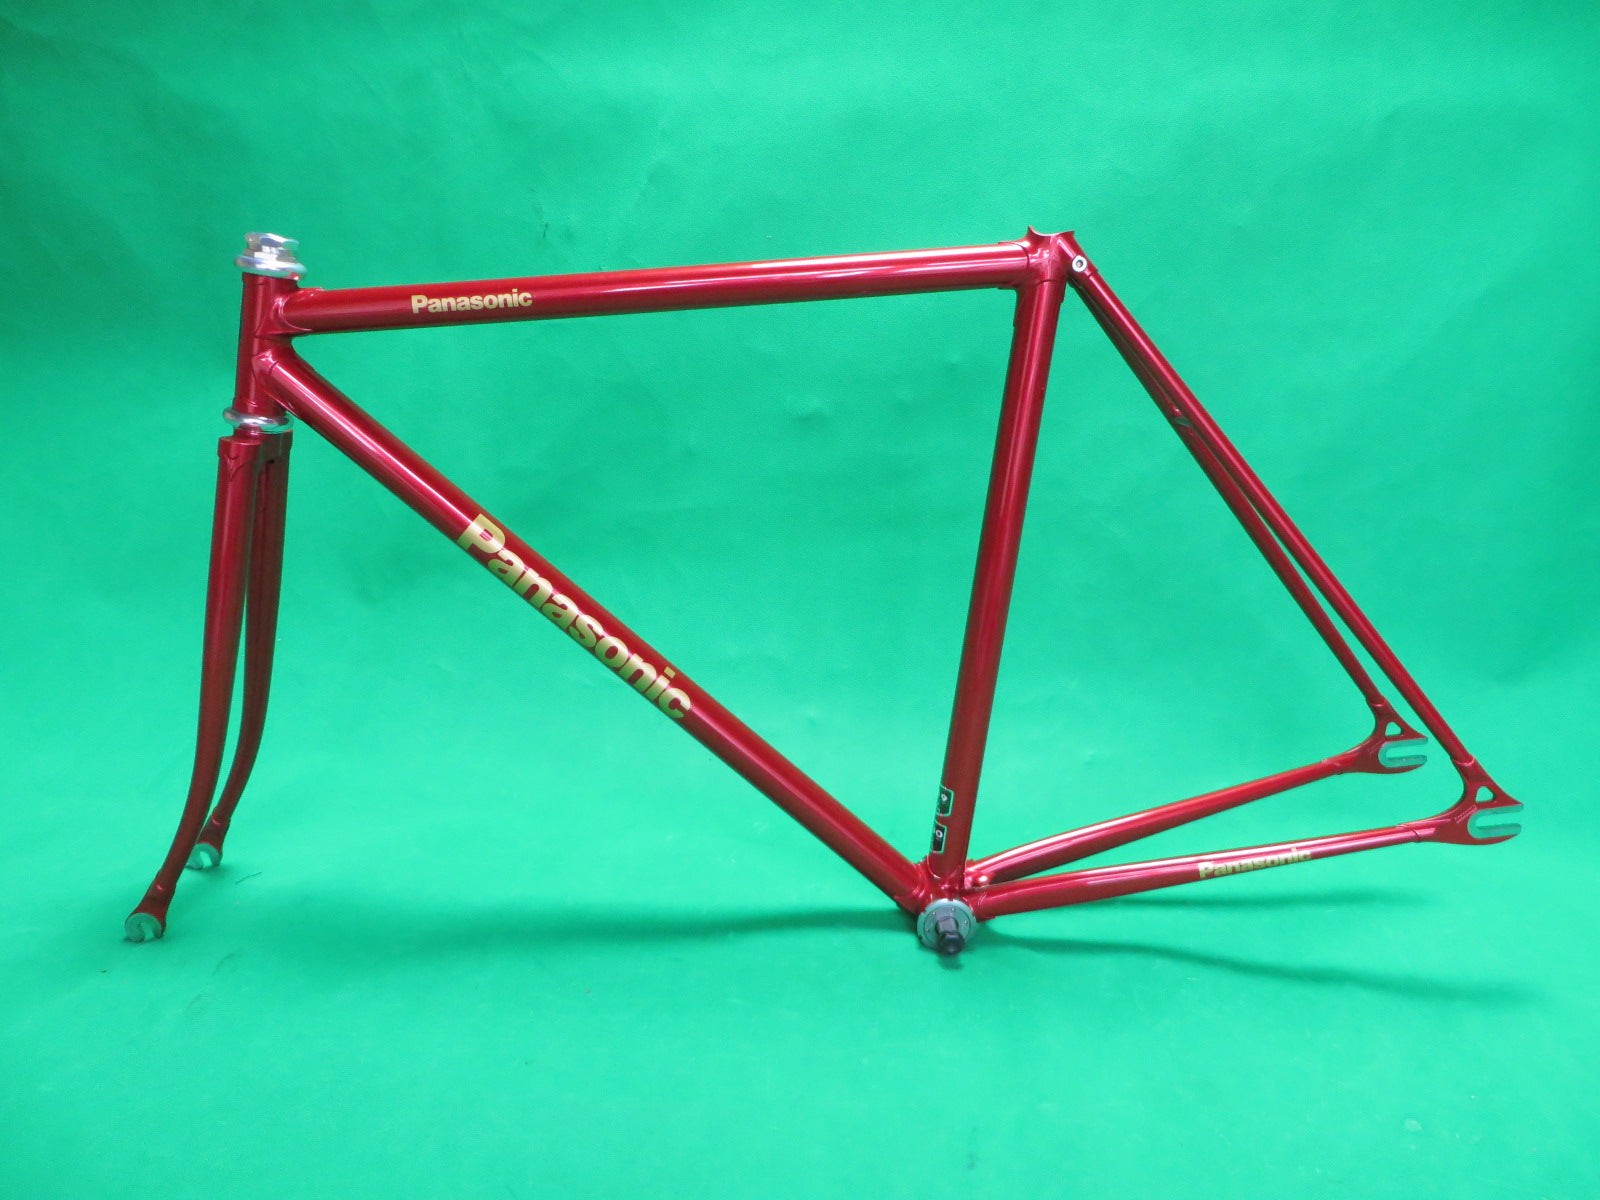 PANASONIC // Red Metallic // Kaisei 4130R 019  // 49.5cm